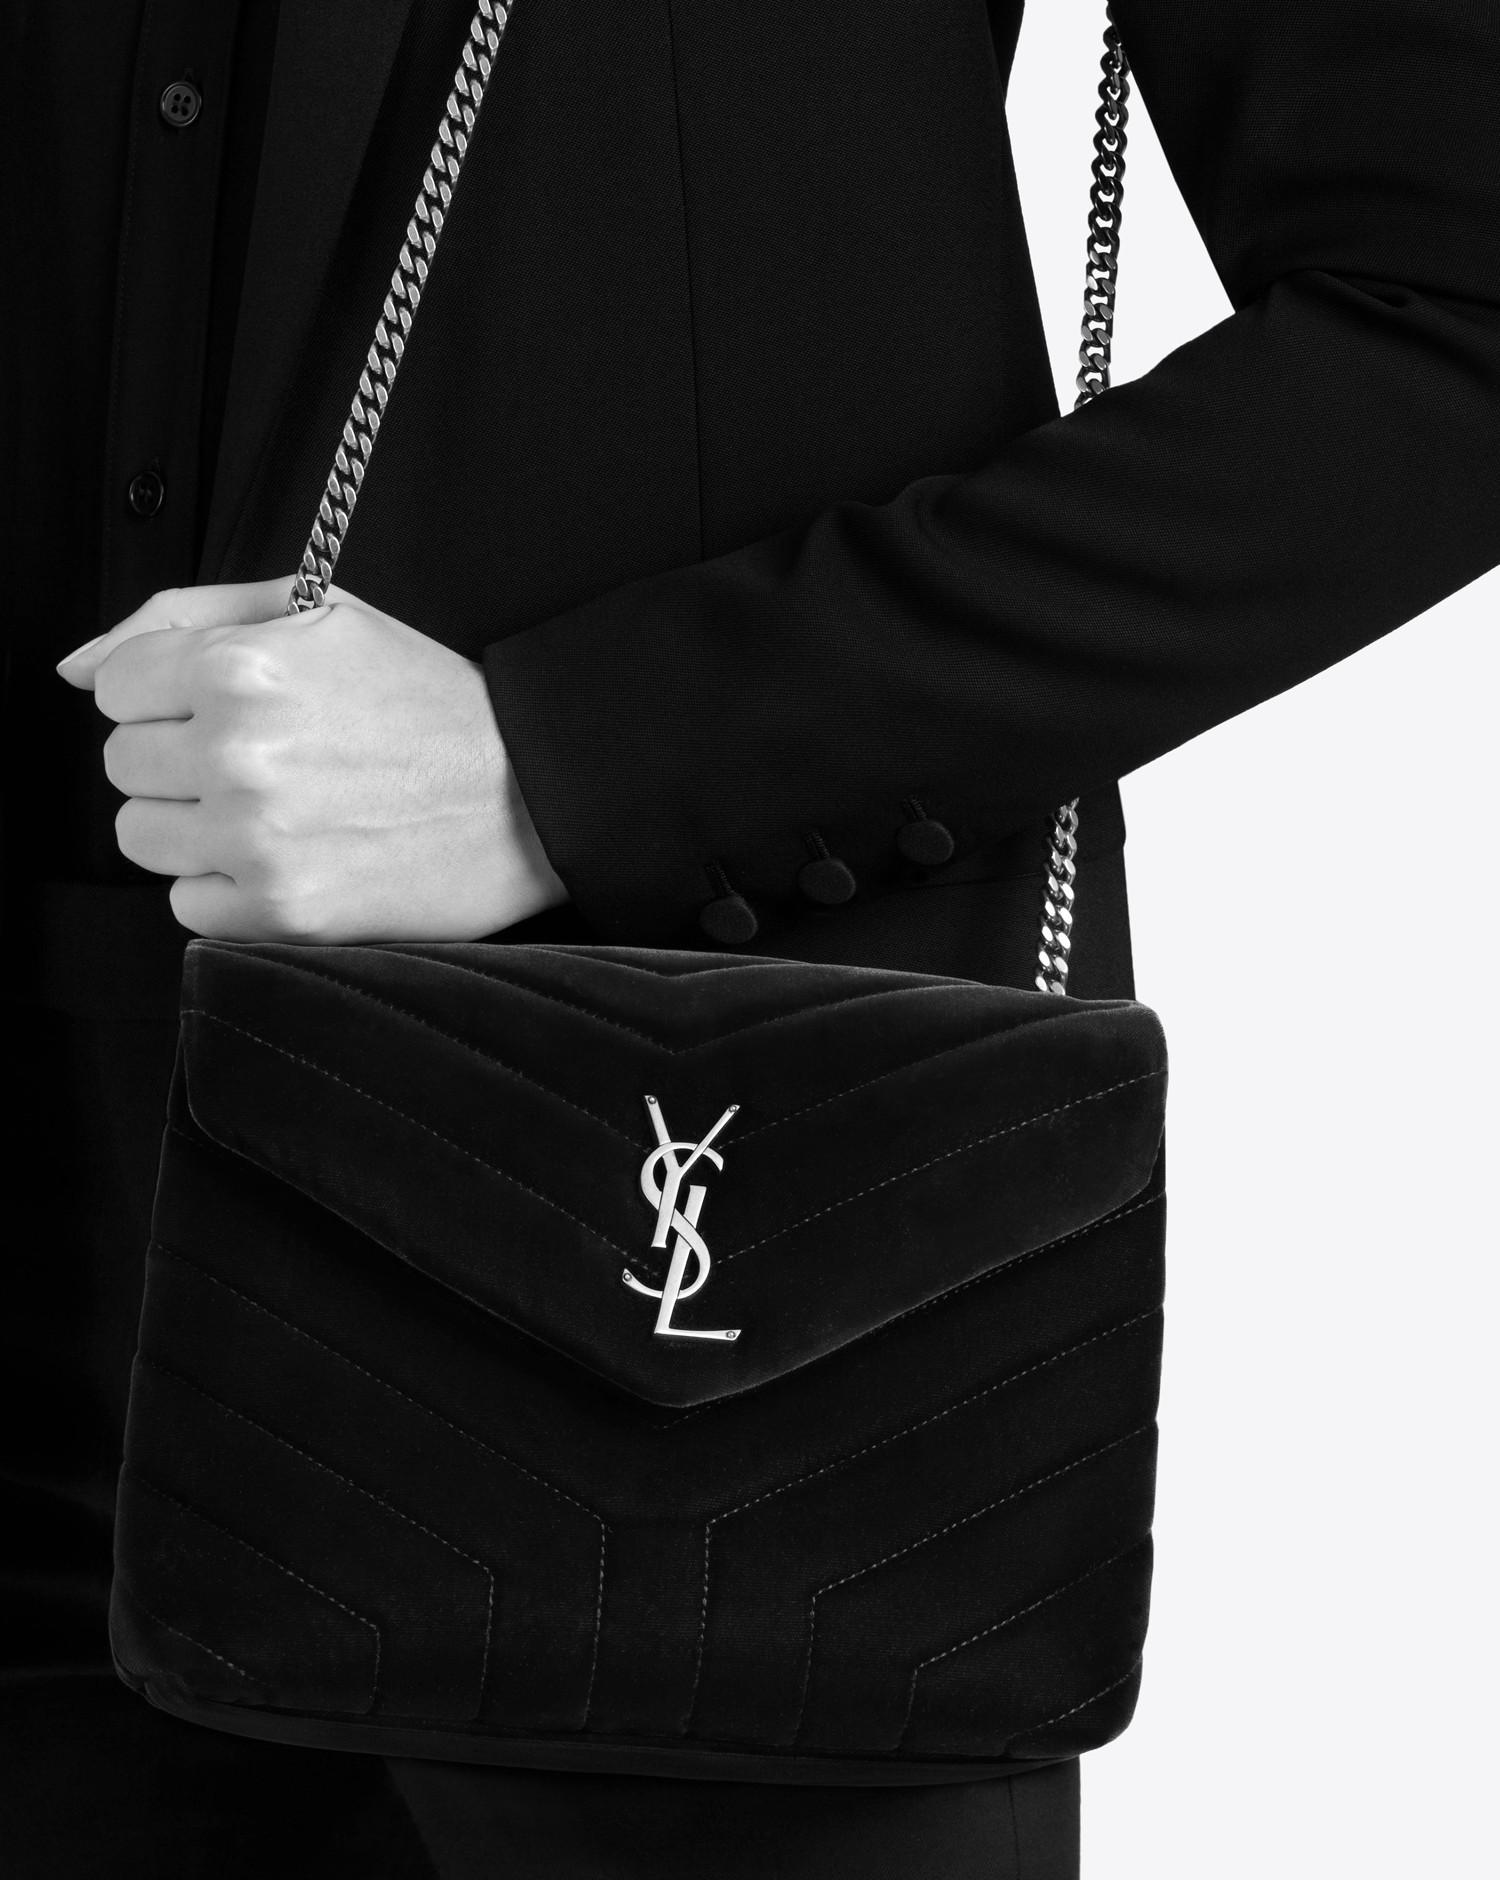 Lyst - Saint Laurent Small Loulou Chain Bag In Black